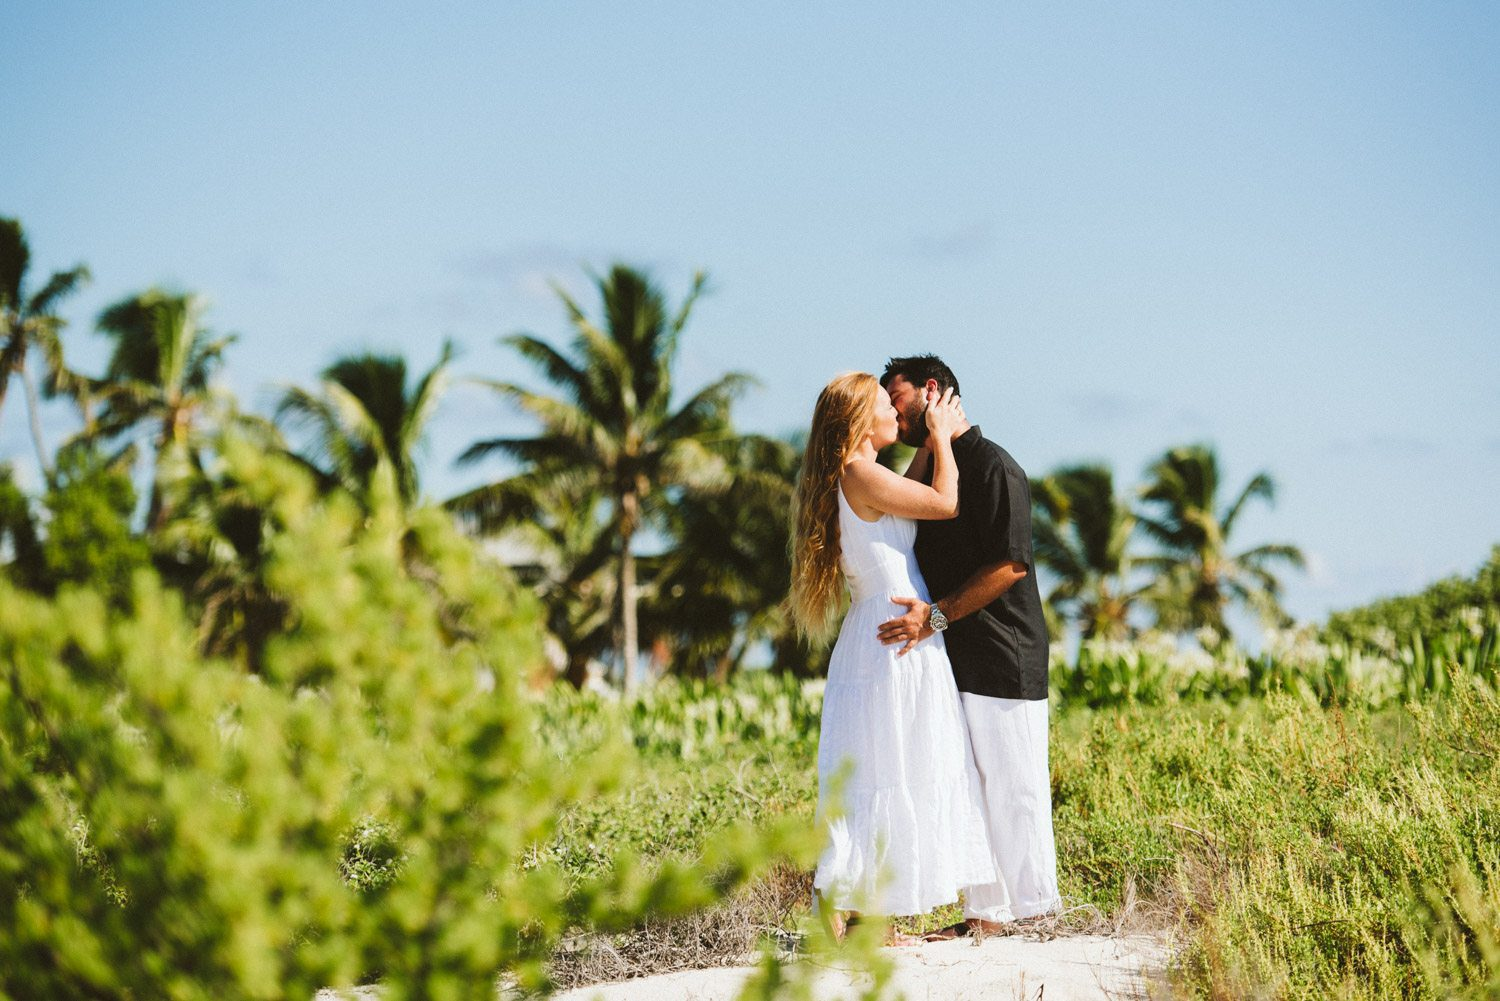 Katherine Oscar Engagement Photos Dry Tortugas 6 - Island Adventure Engagement Session - Dry Tortugas National Park and Fort Jefferson